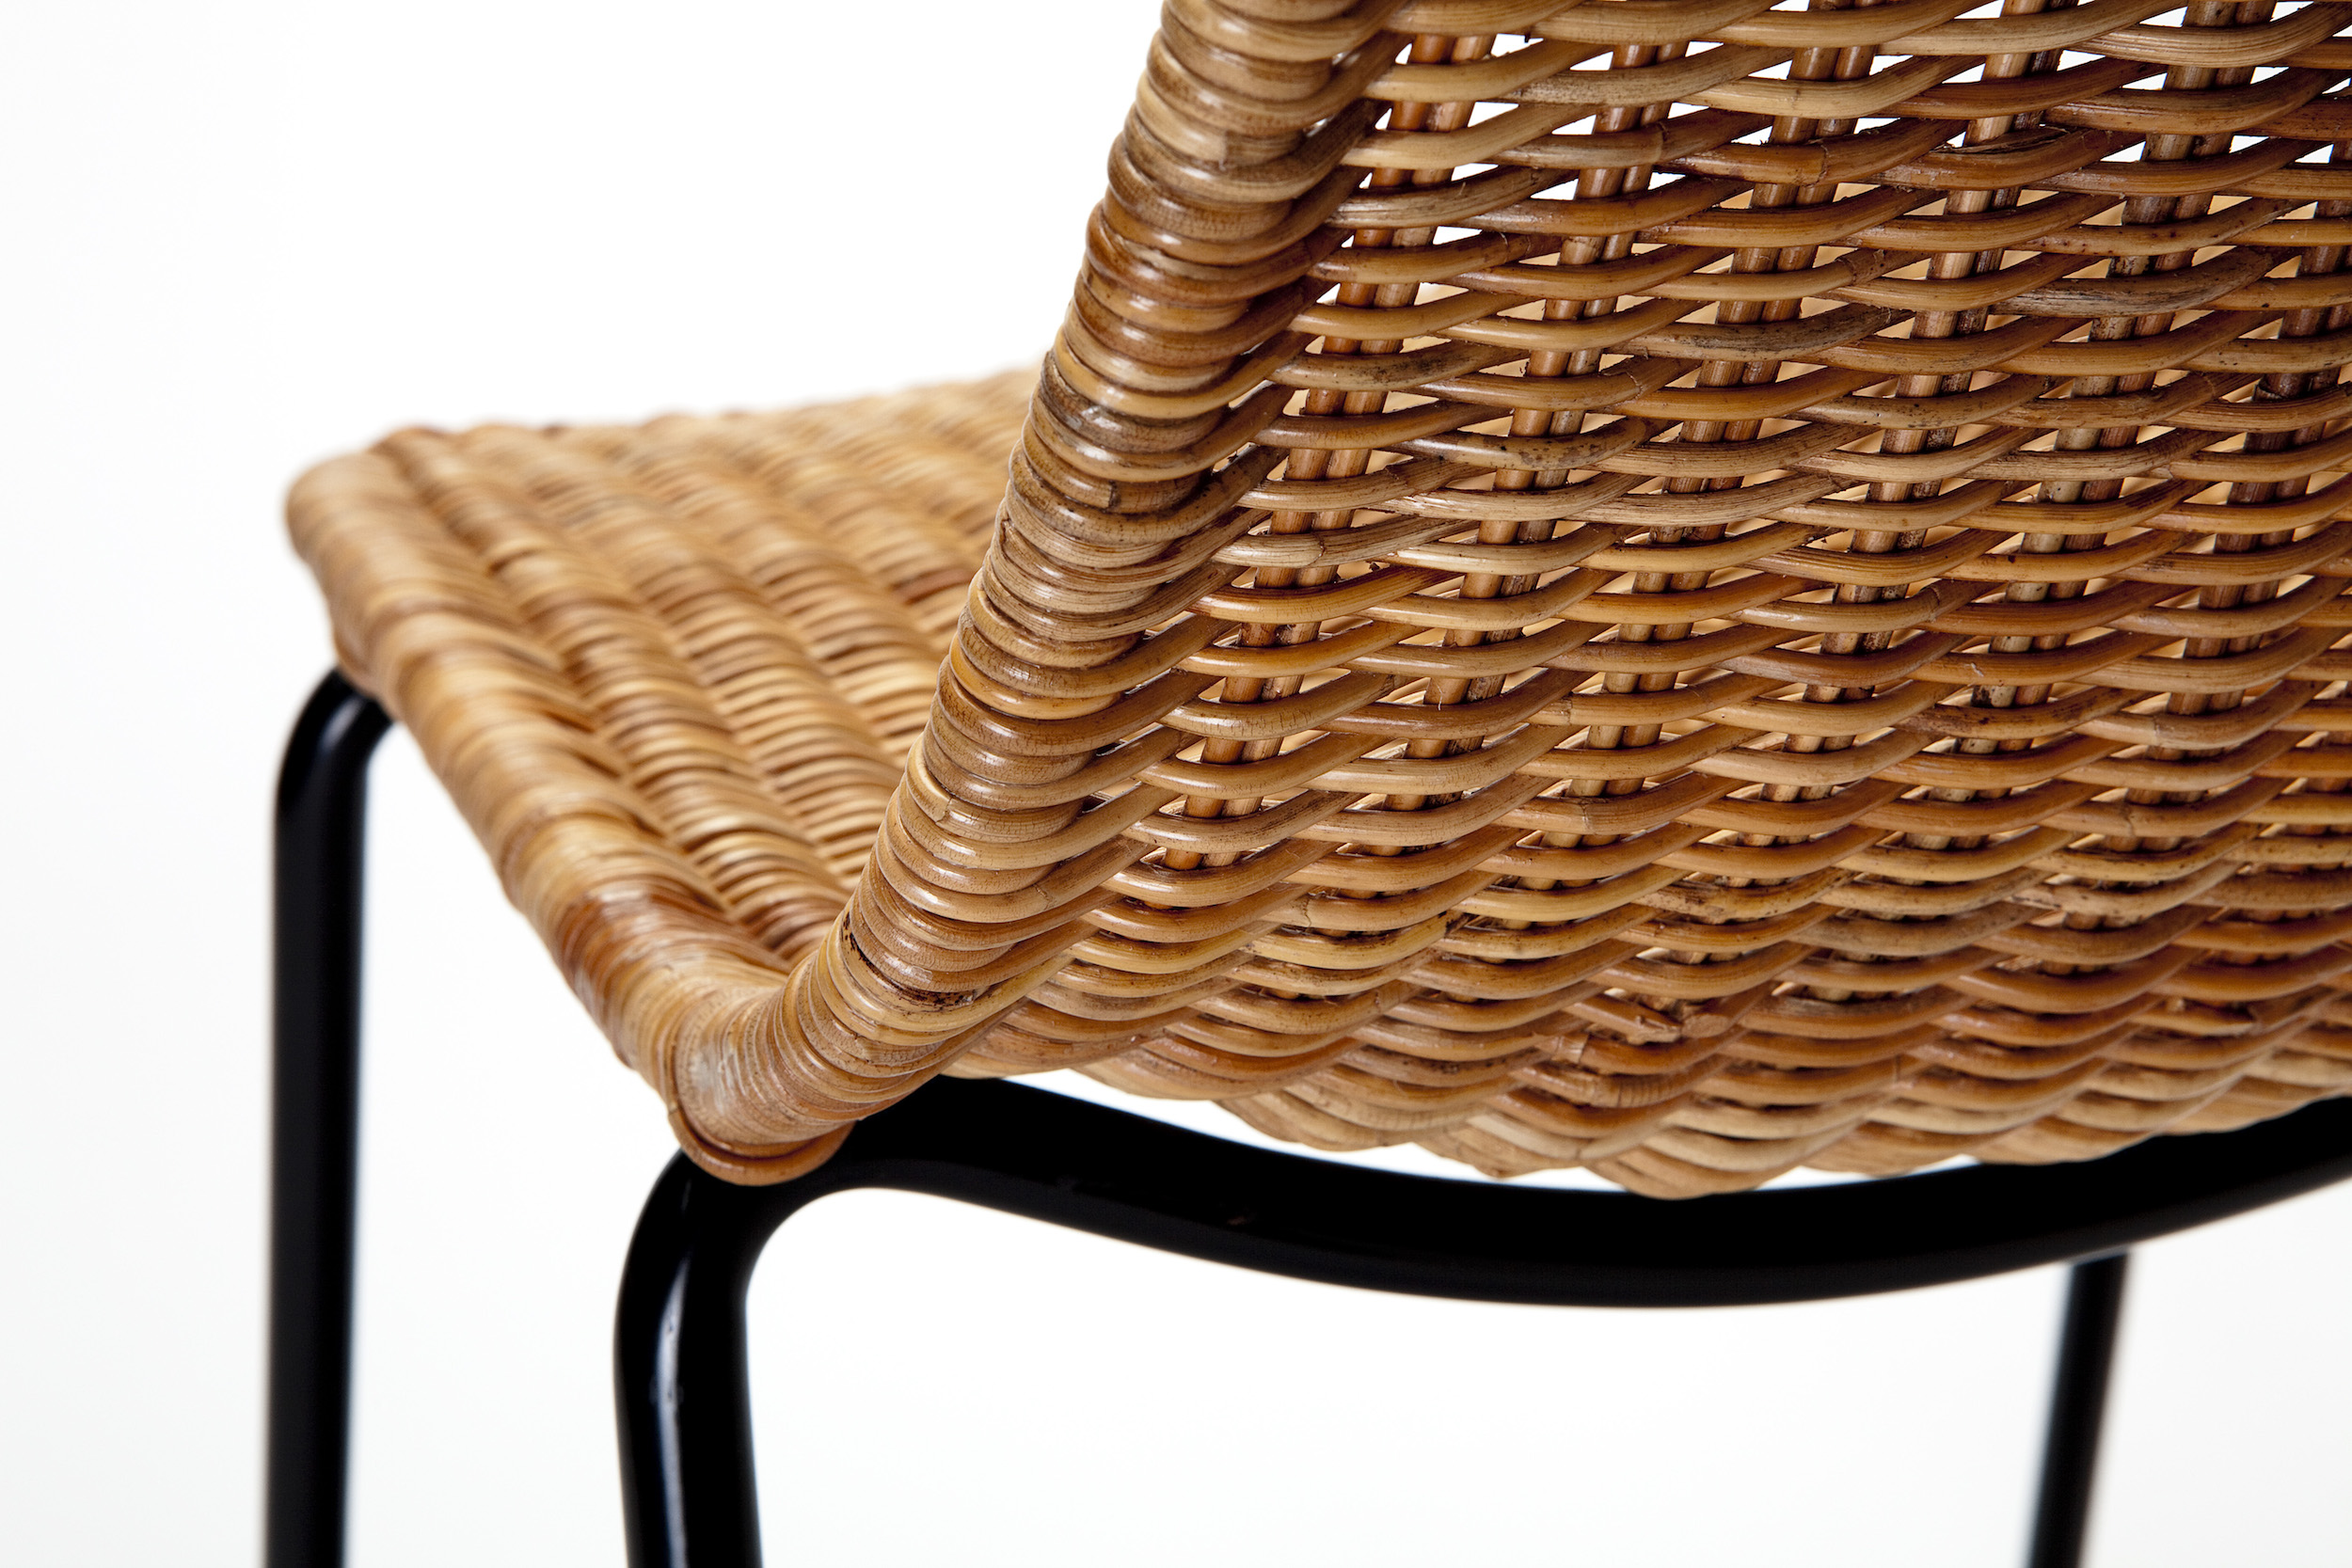 Detail of the handwoven Rattan Pulut Shell